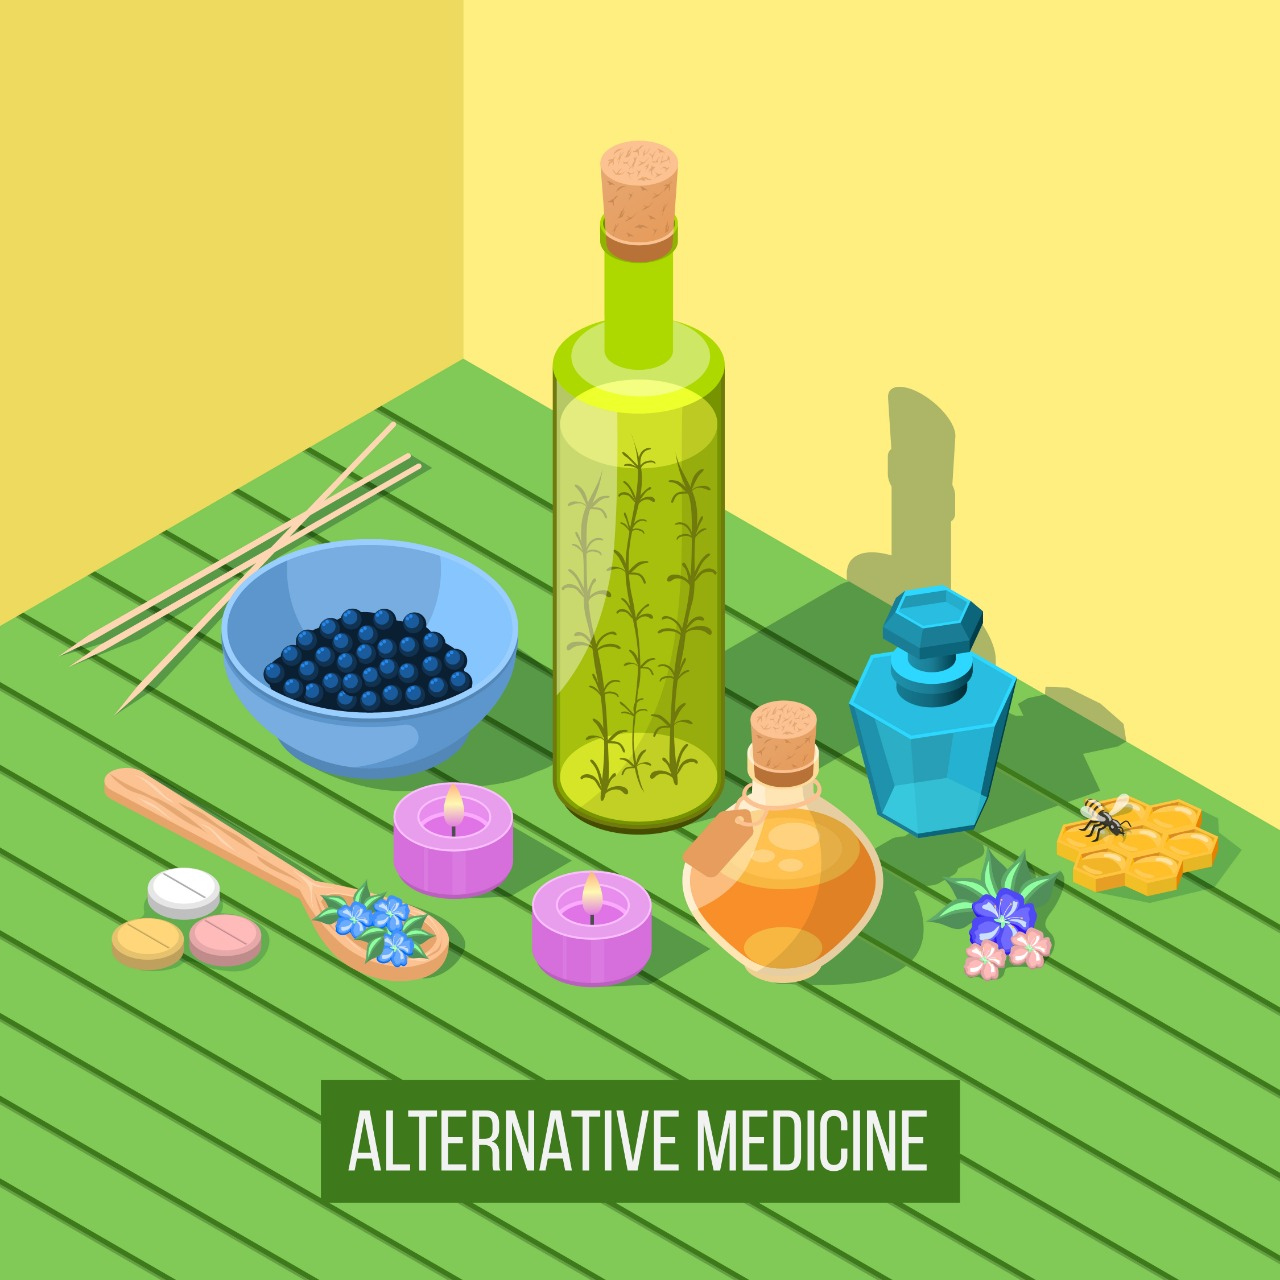 Top 5 Reasons Why You Should Visit a Naturopath